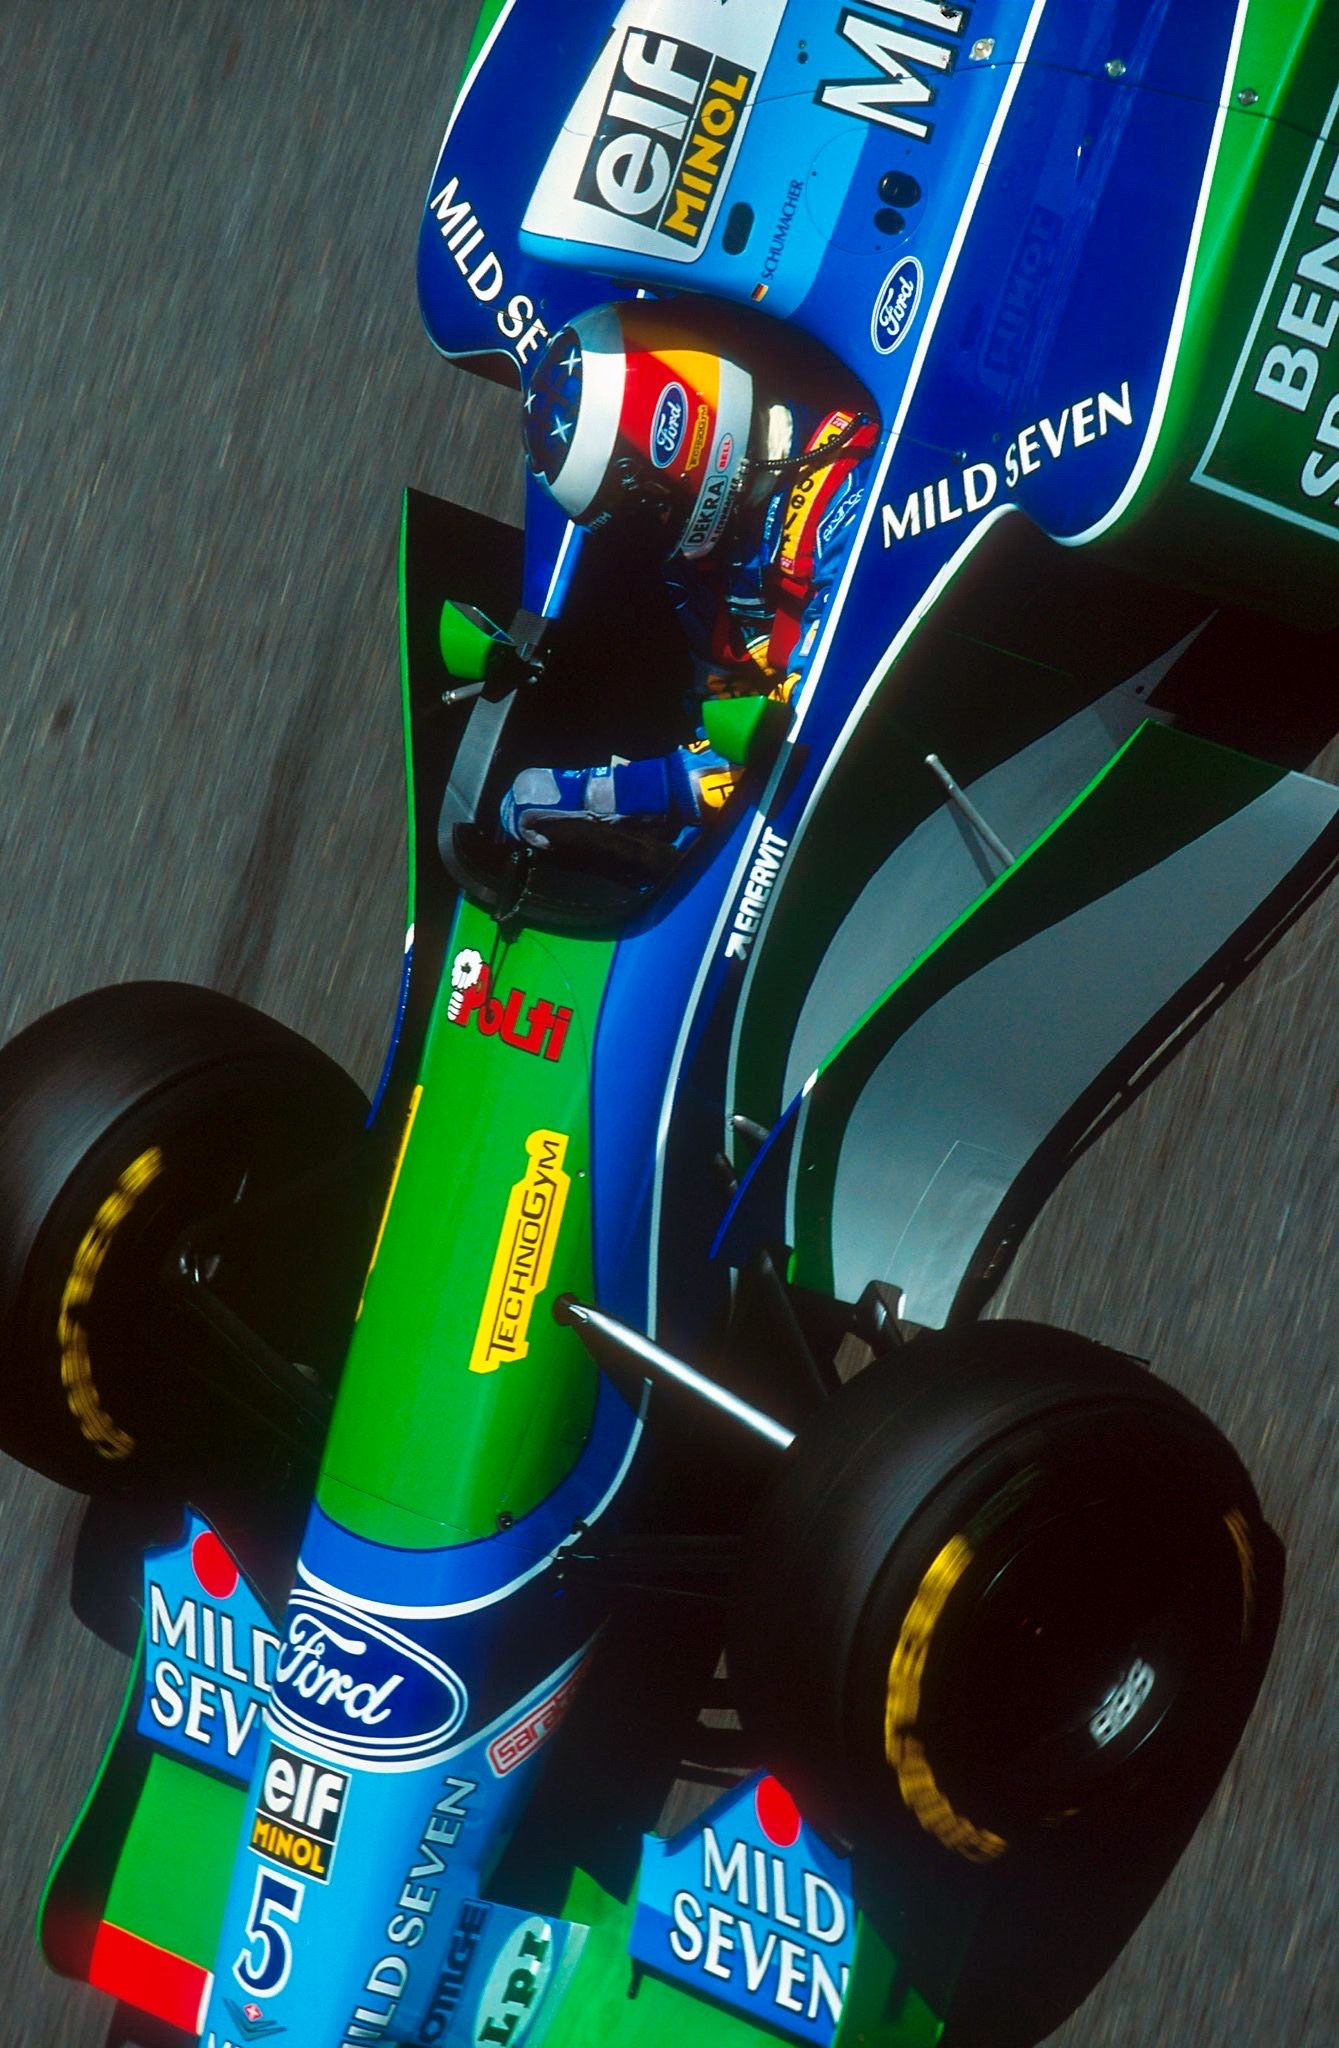 2018 5 15 Twitter F1 14 May 1994 Monaco The Great Michael Schumacher Takes His First Ever F1 Pole He Was Formula Um Ayrton Senna Automobilismo